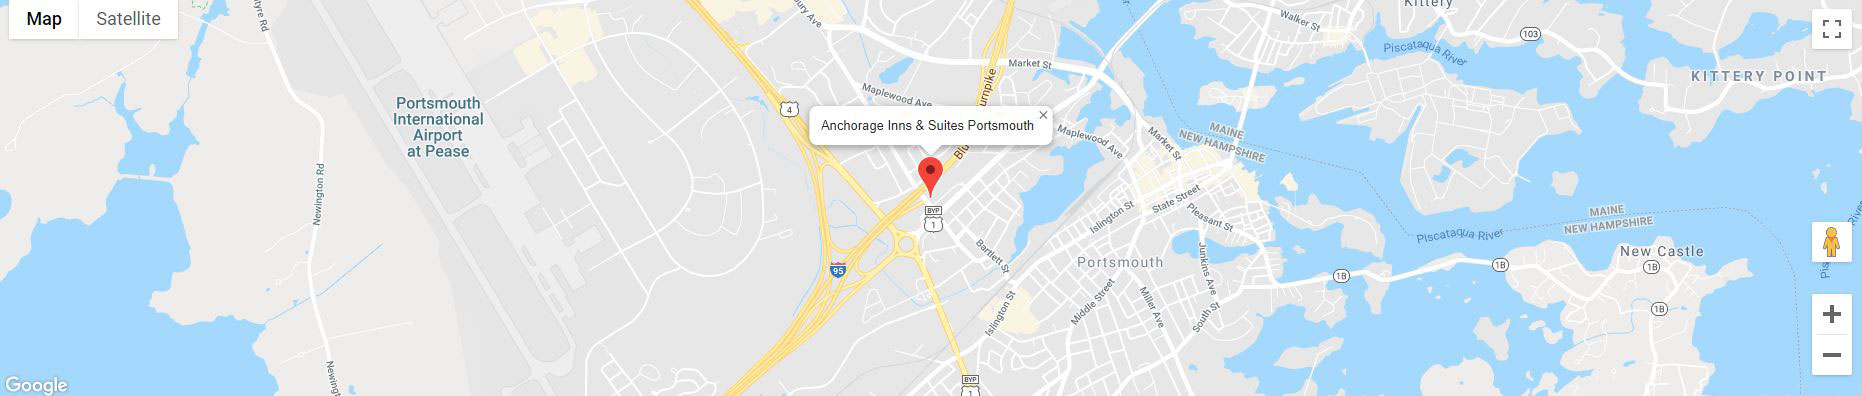 map of Anchorage Inns & Suites Portsmouth